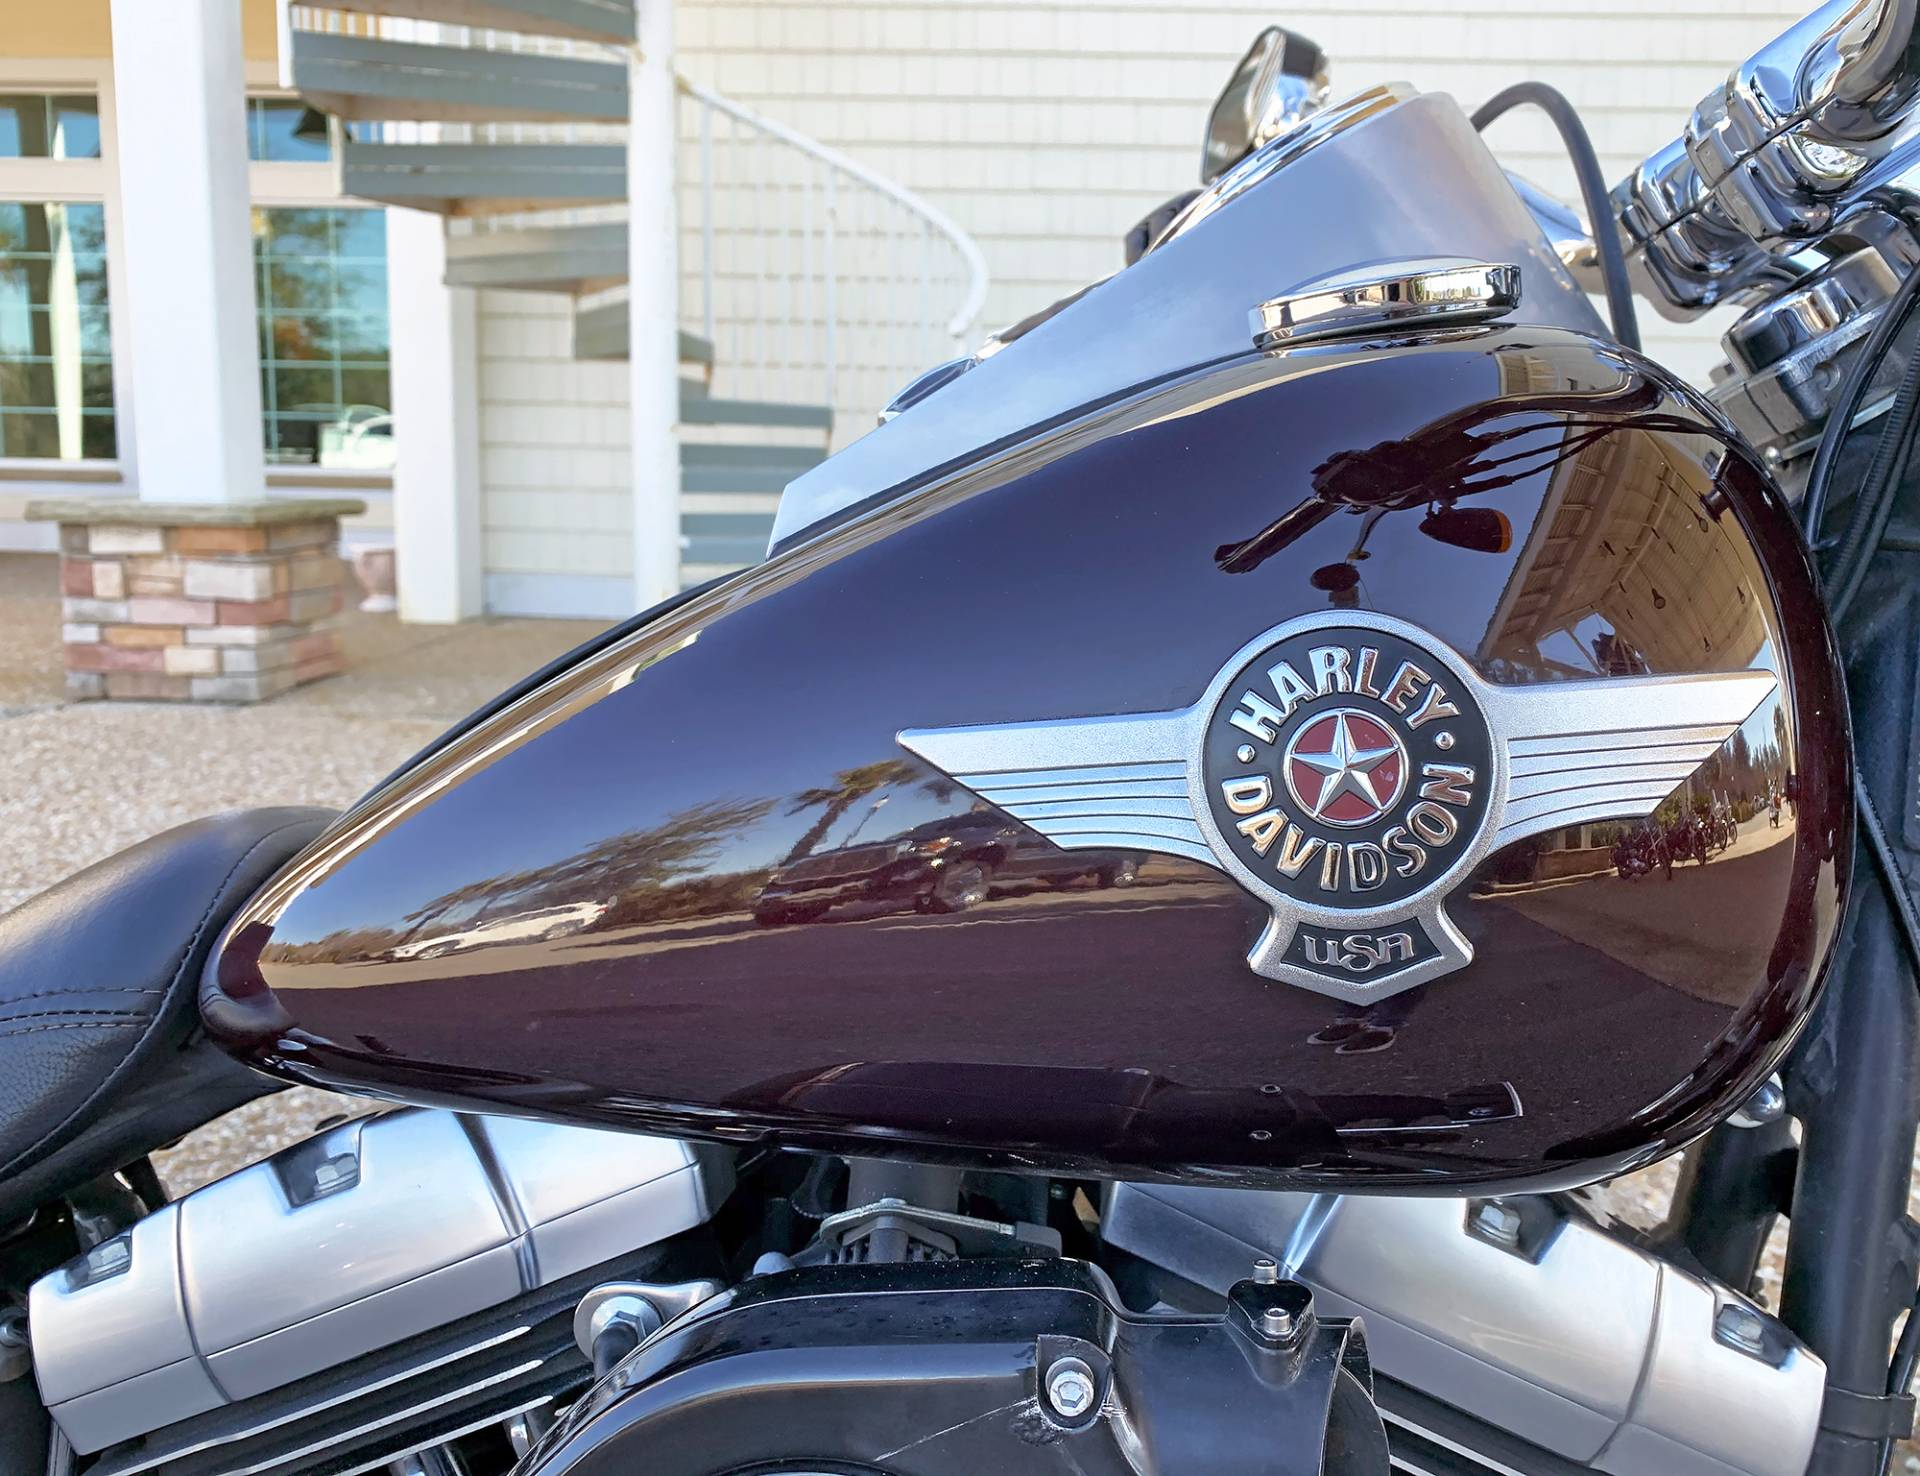 2014 Harley-Davidson Fat Boy® in Jacksonville, North Carolina - Photo 10